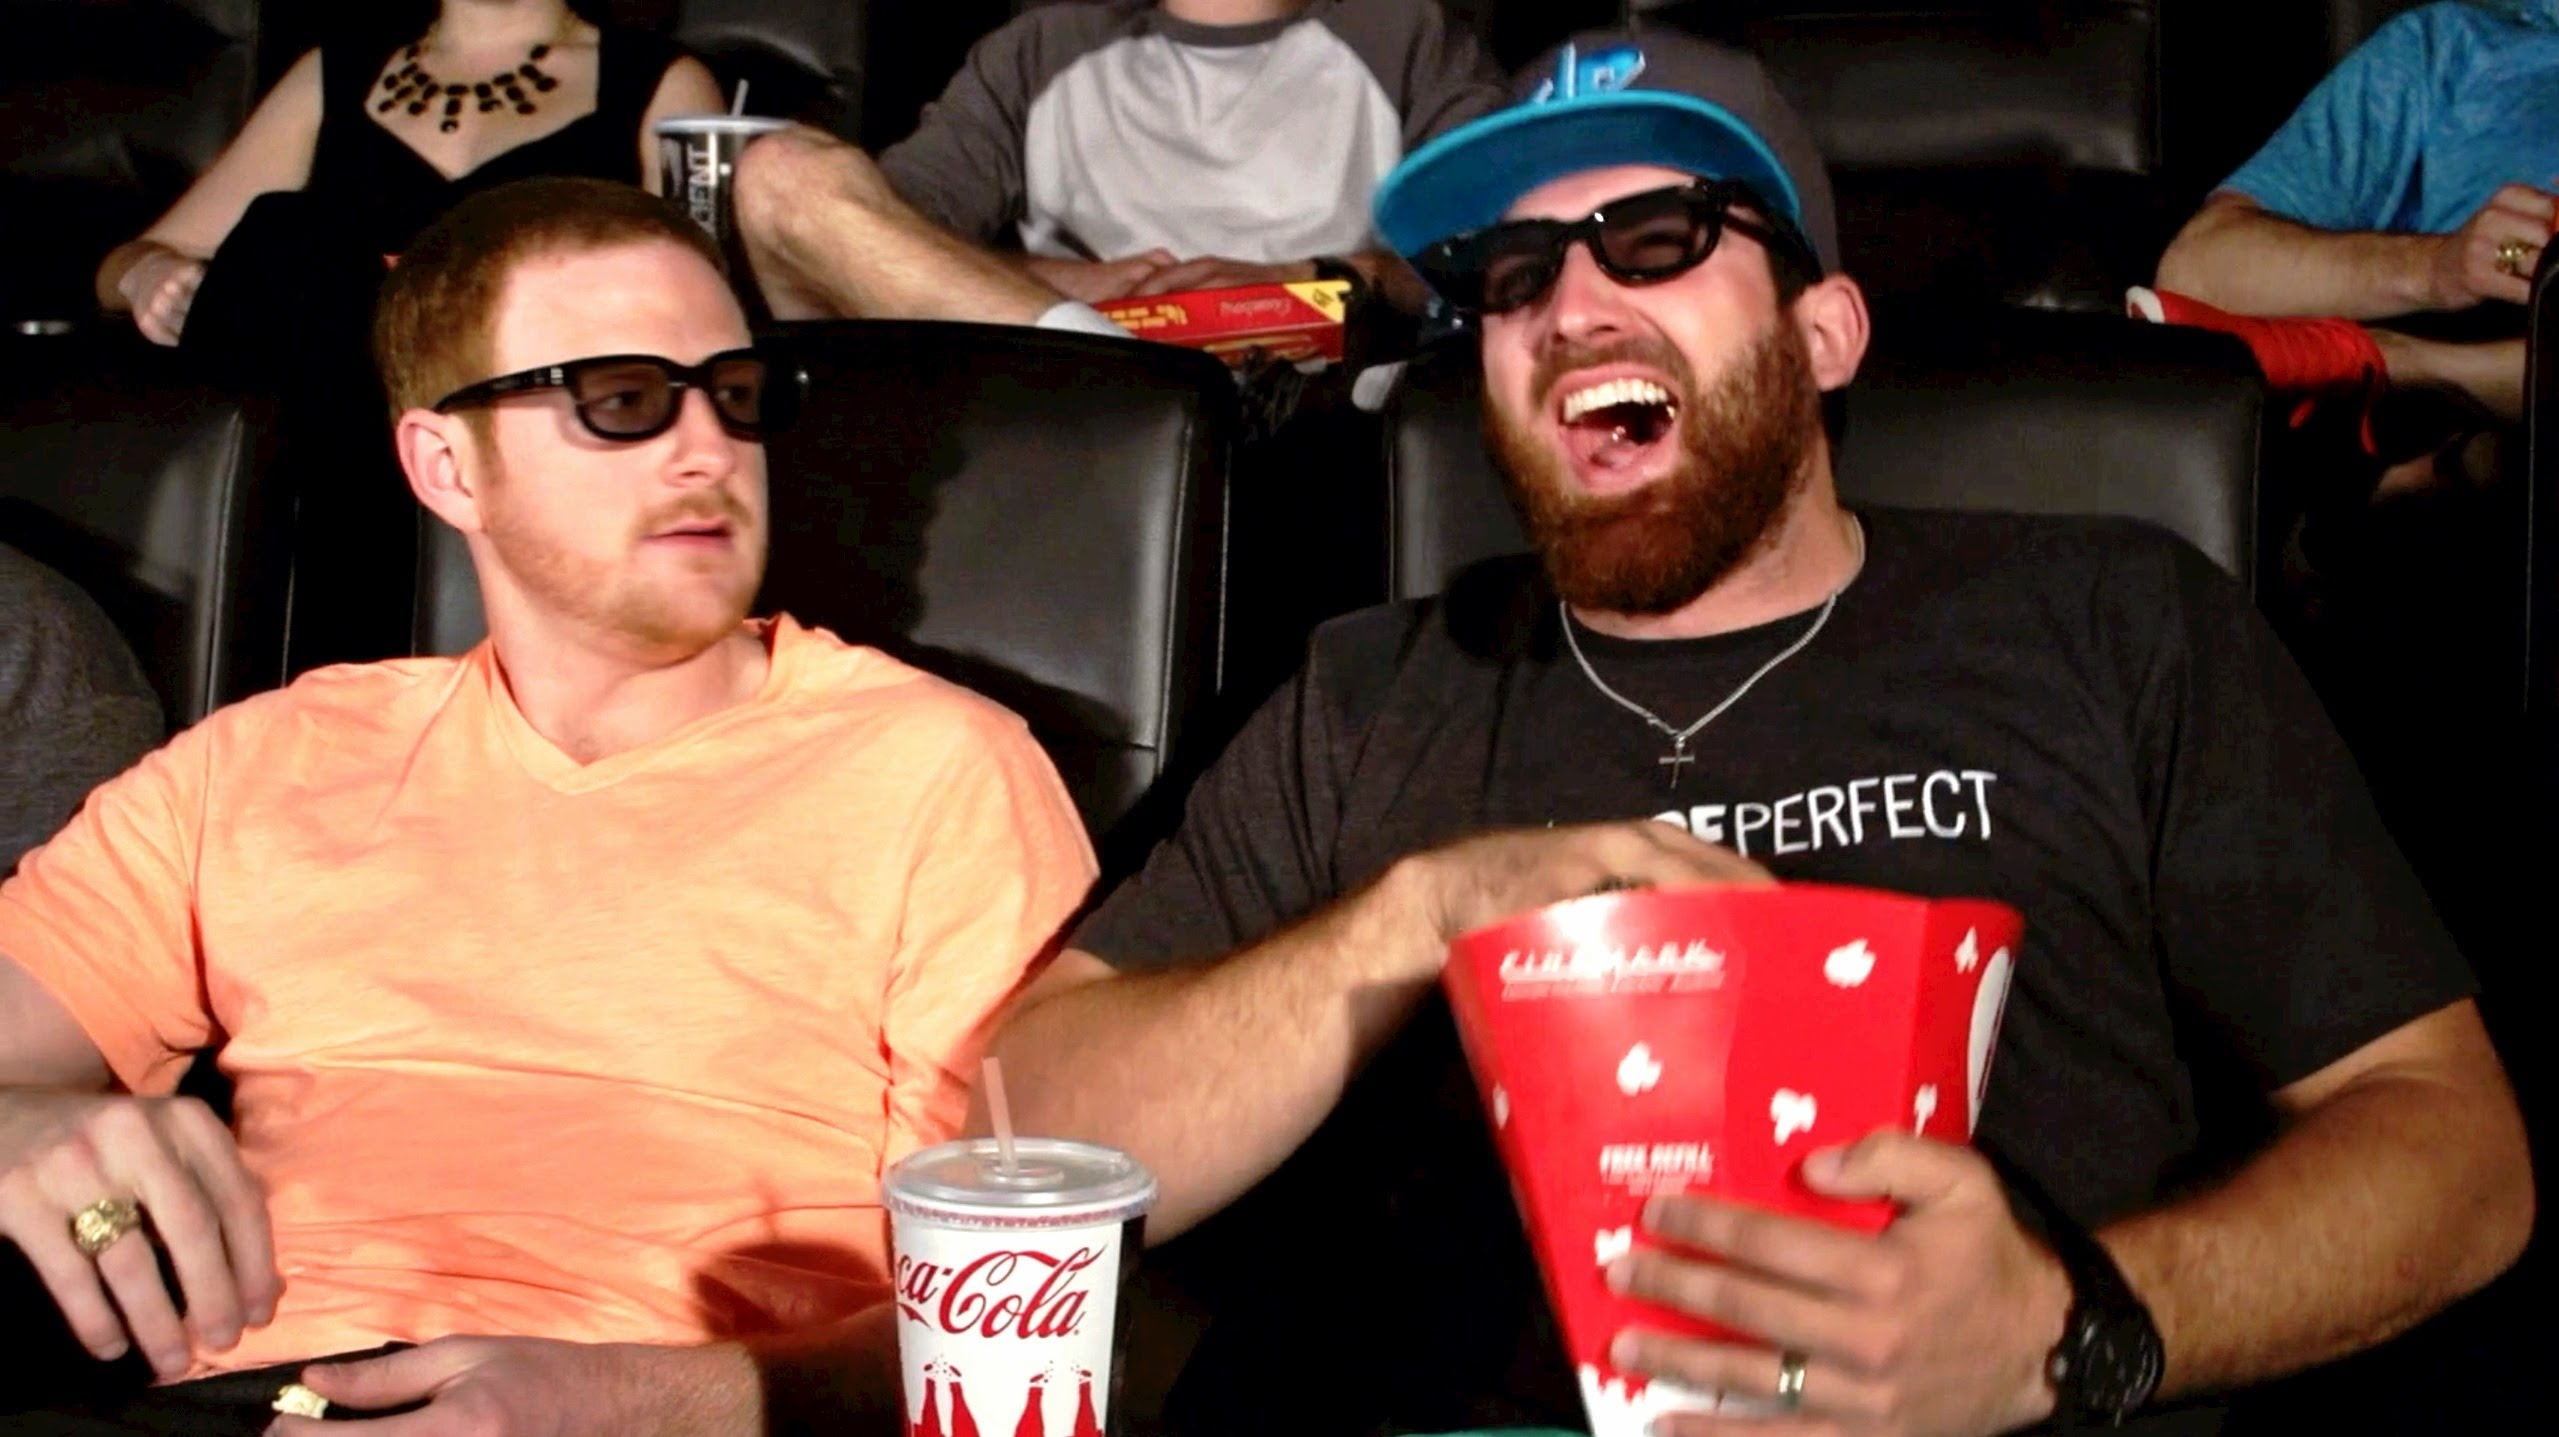 the common stereotypes of people in movie theaters